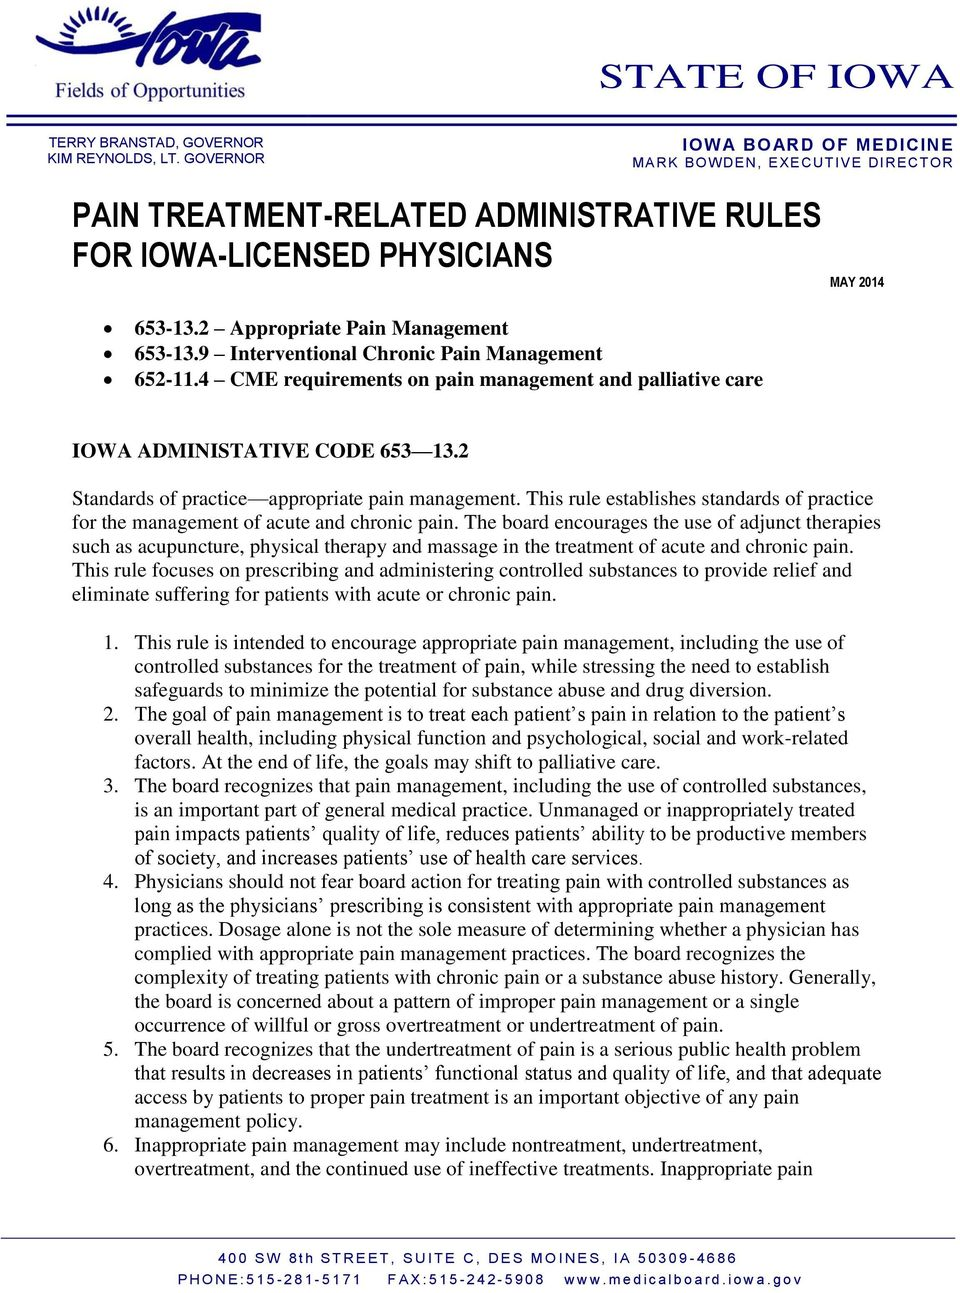 9 Interventional Chronic Pain Management 652-11.4 CME requirements on pain management and palliative care IOWA ADMINISTATIVE CODE 653 13.2 Standards of practice appropriate pain management.